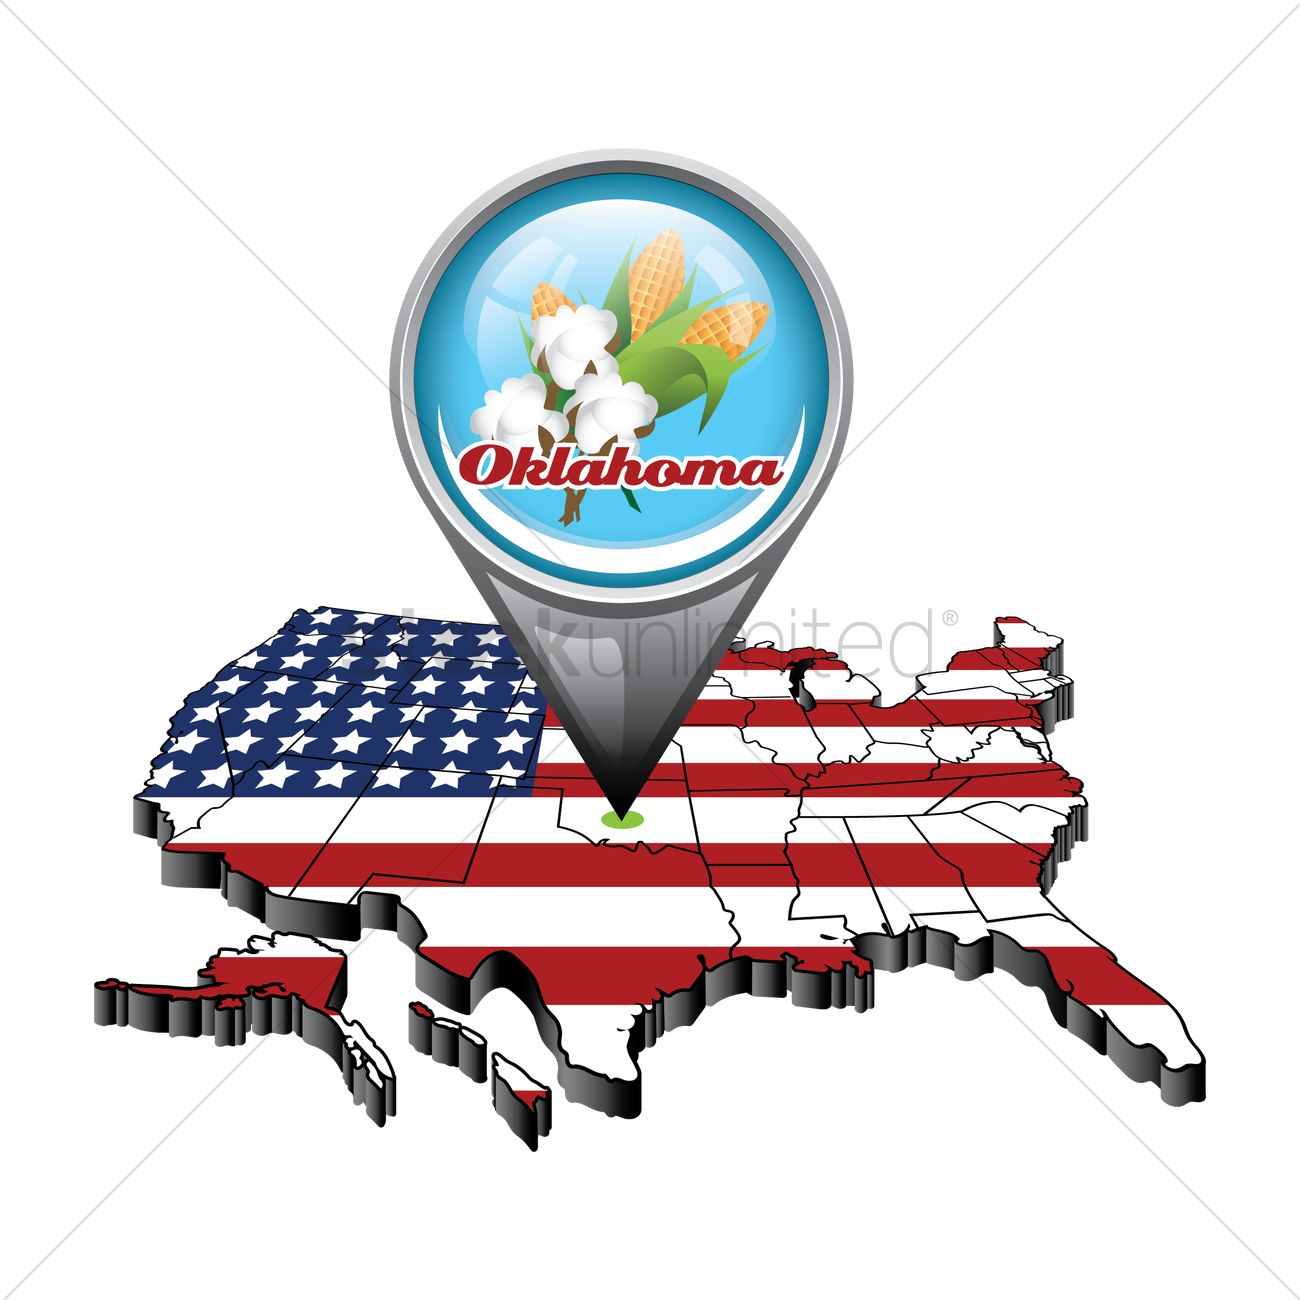 Us map with pin showing oklahoma state Vector Image 1553434